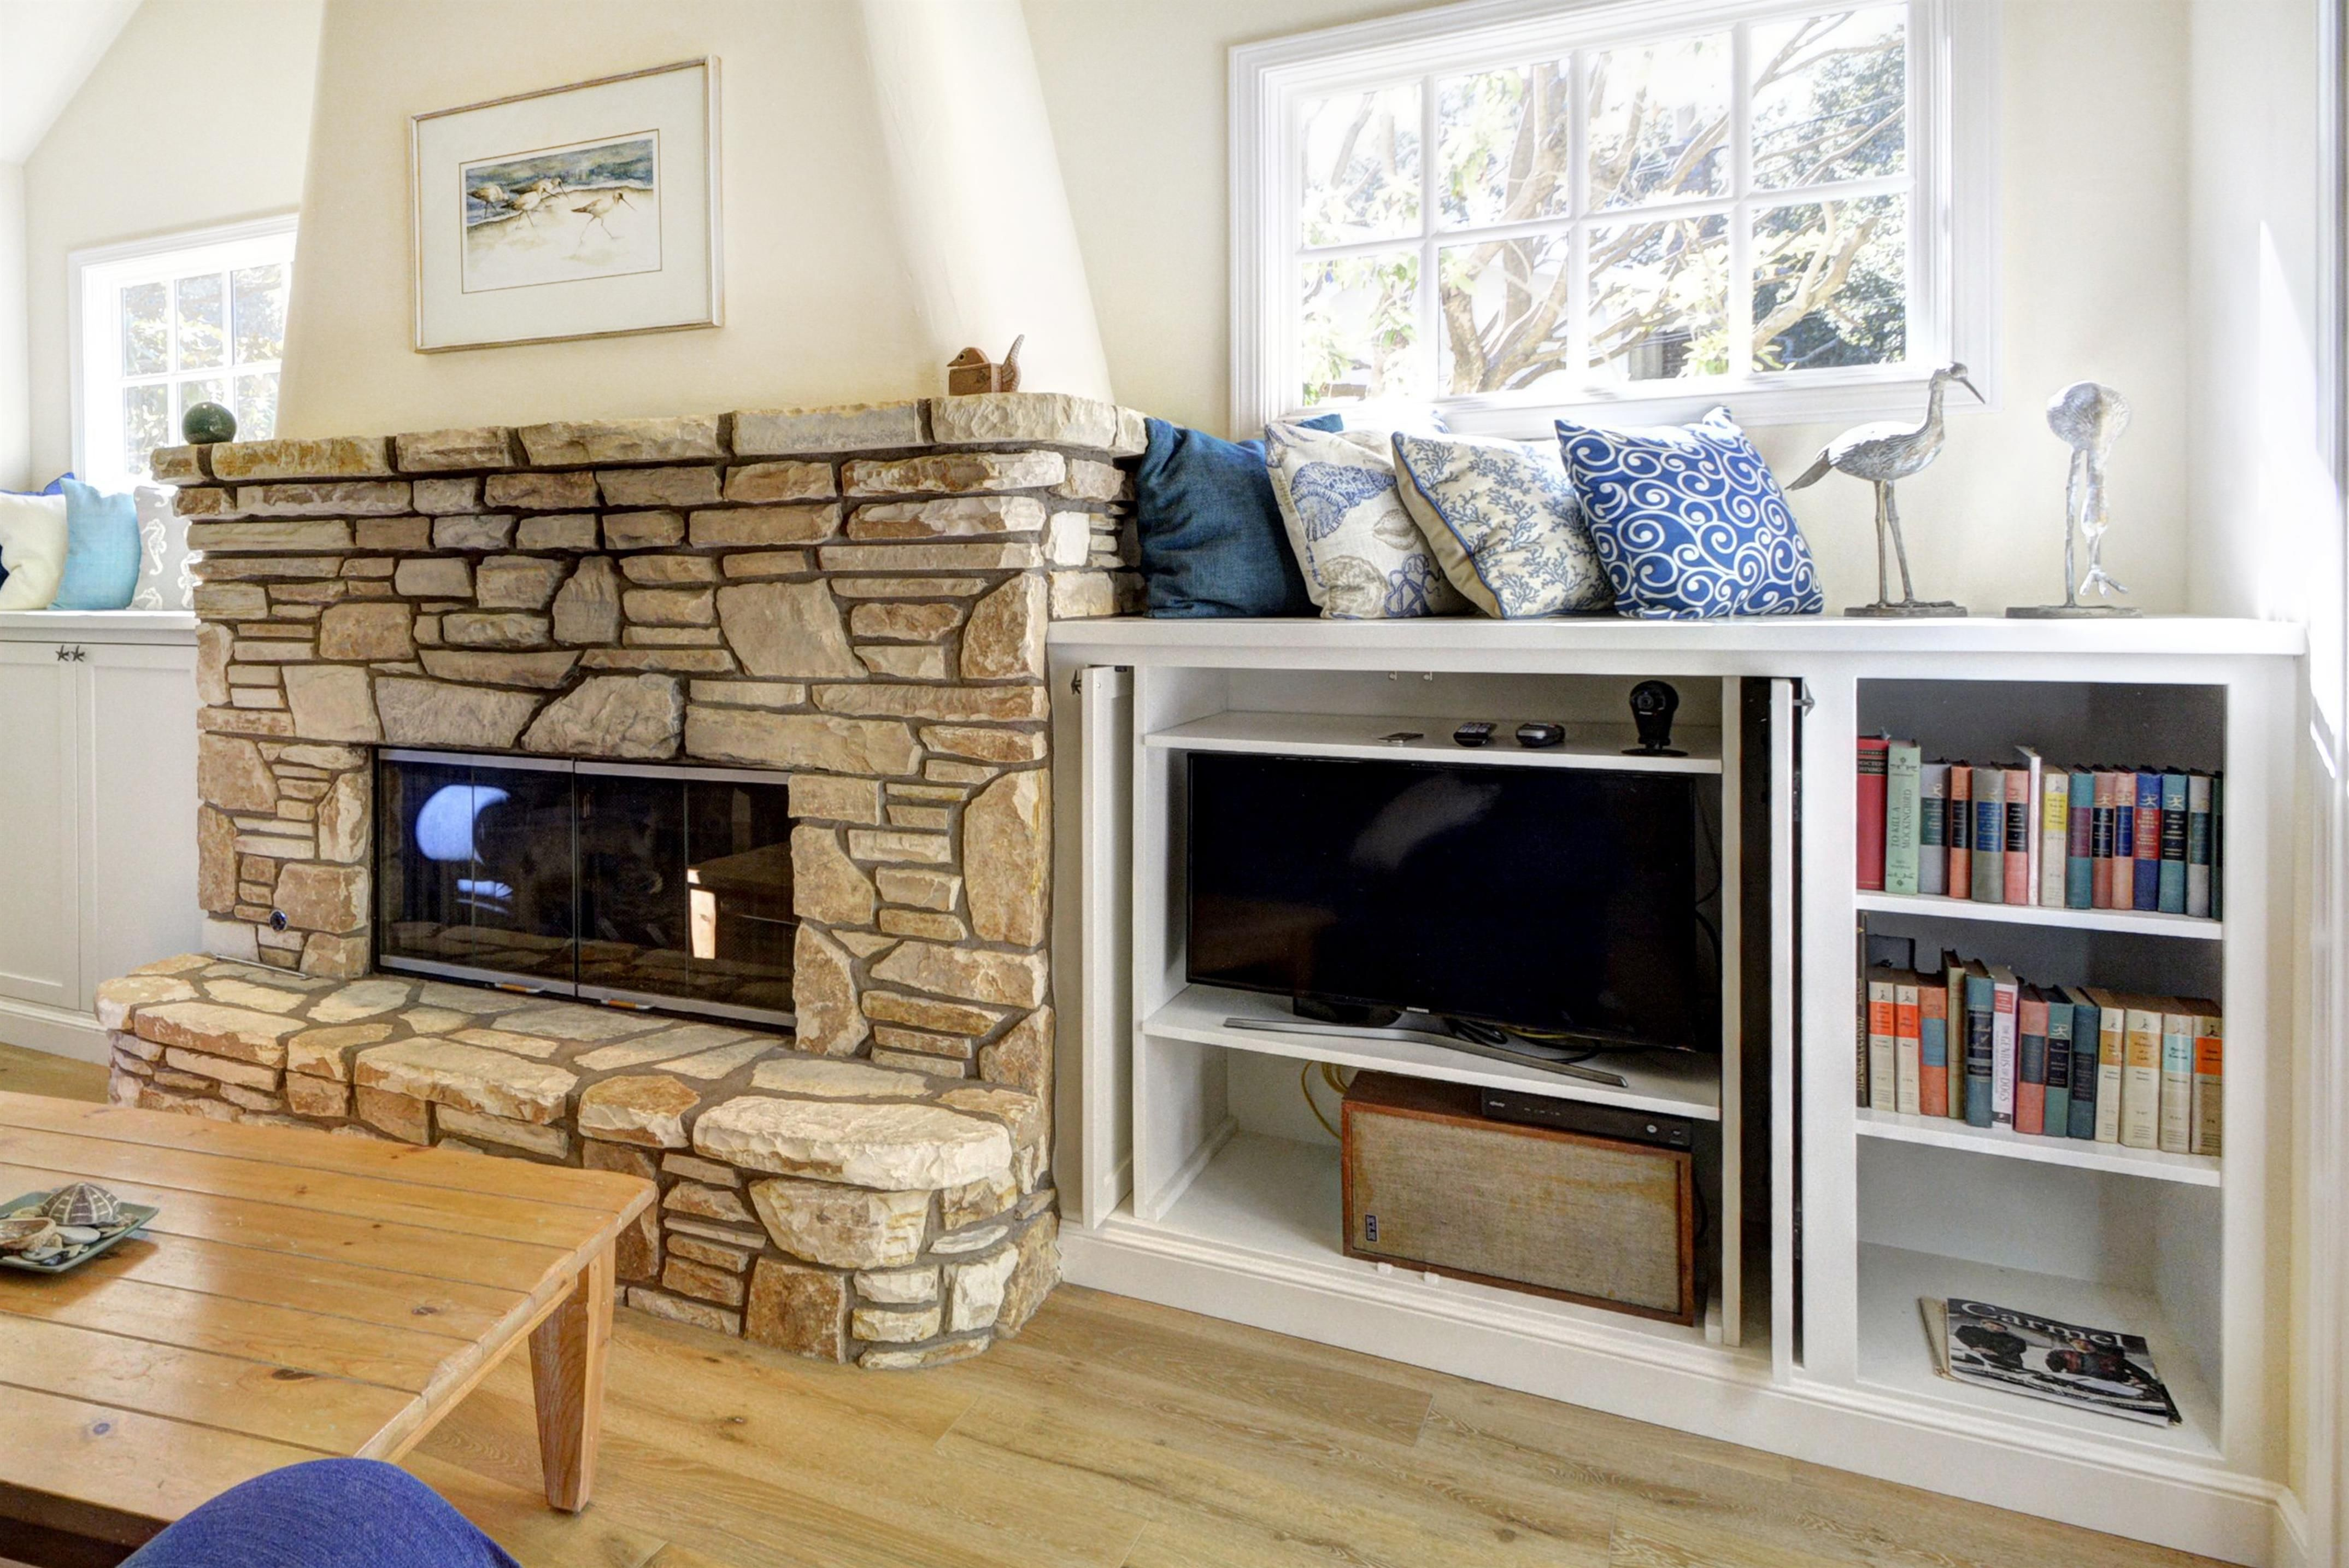 Stone fireplace with shelves